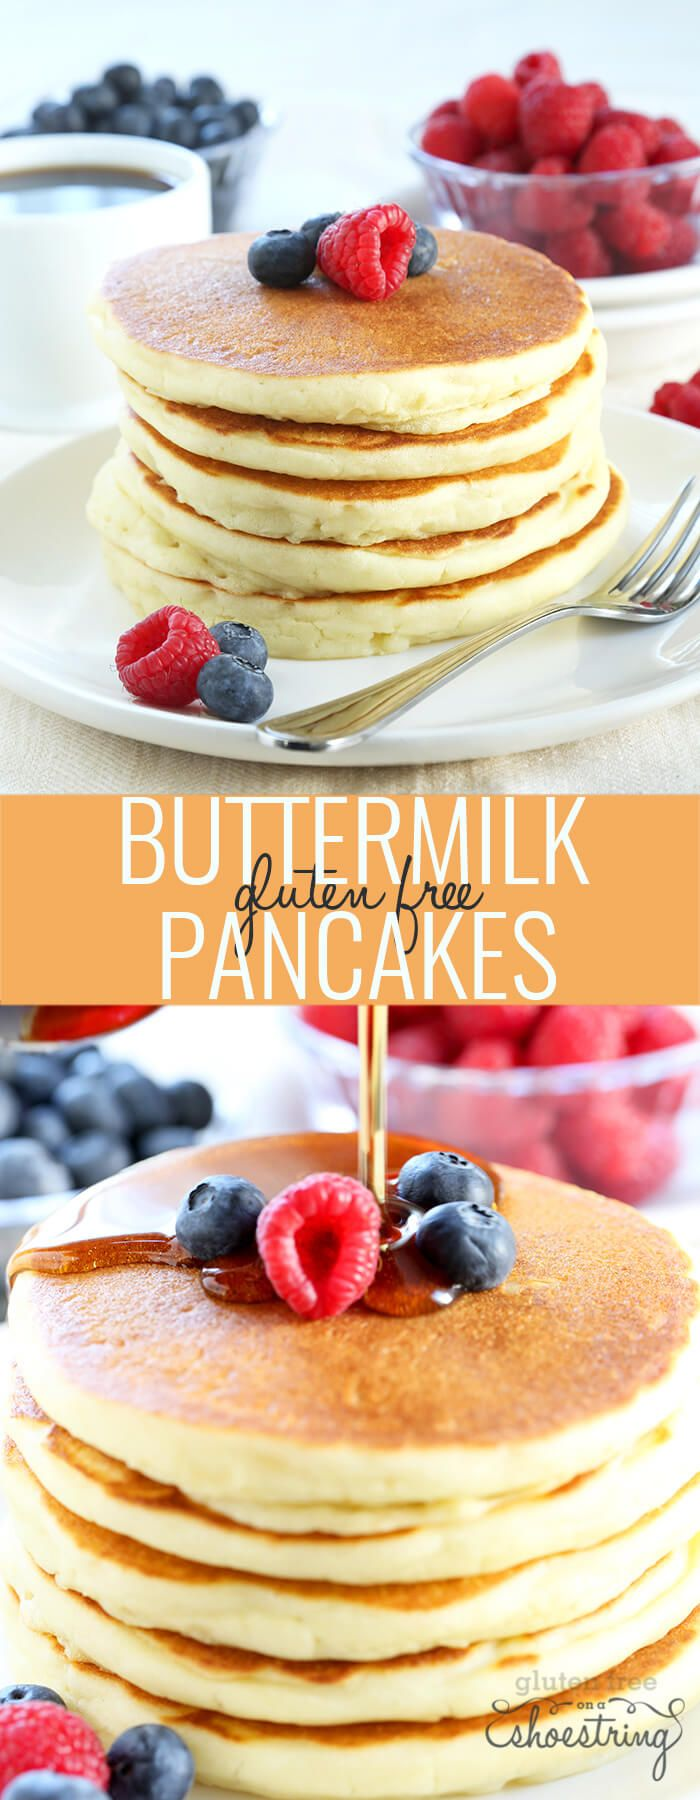 This is the classic gluten free pancake recipe you've been looking for. Perfectly light and fluffy buttermilk pancakes that you can make ahead and freeze!